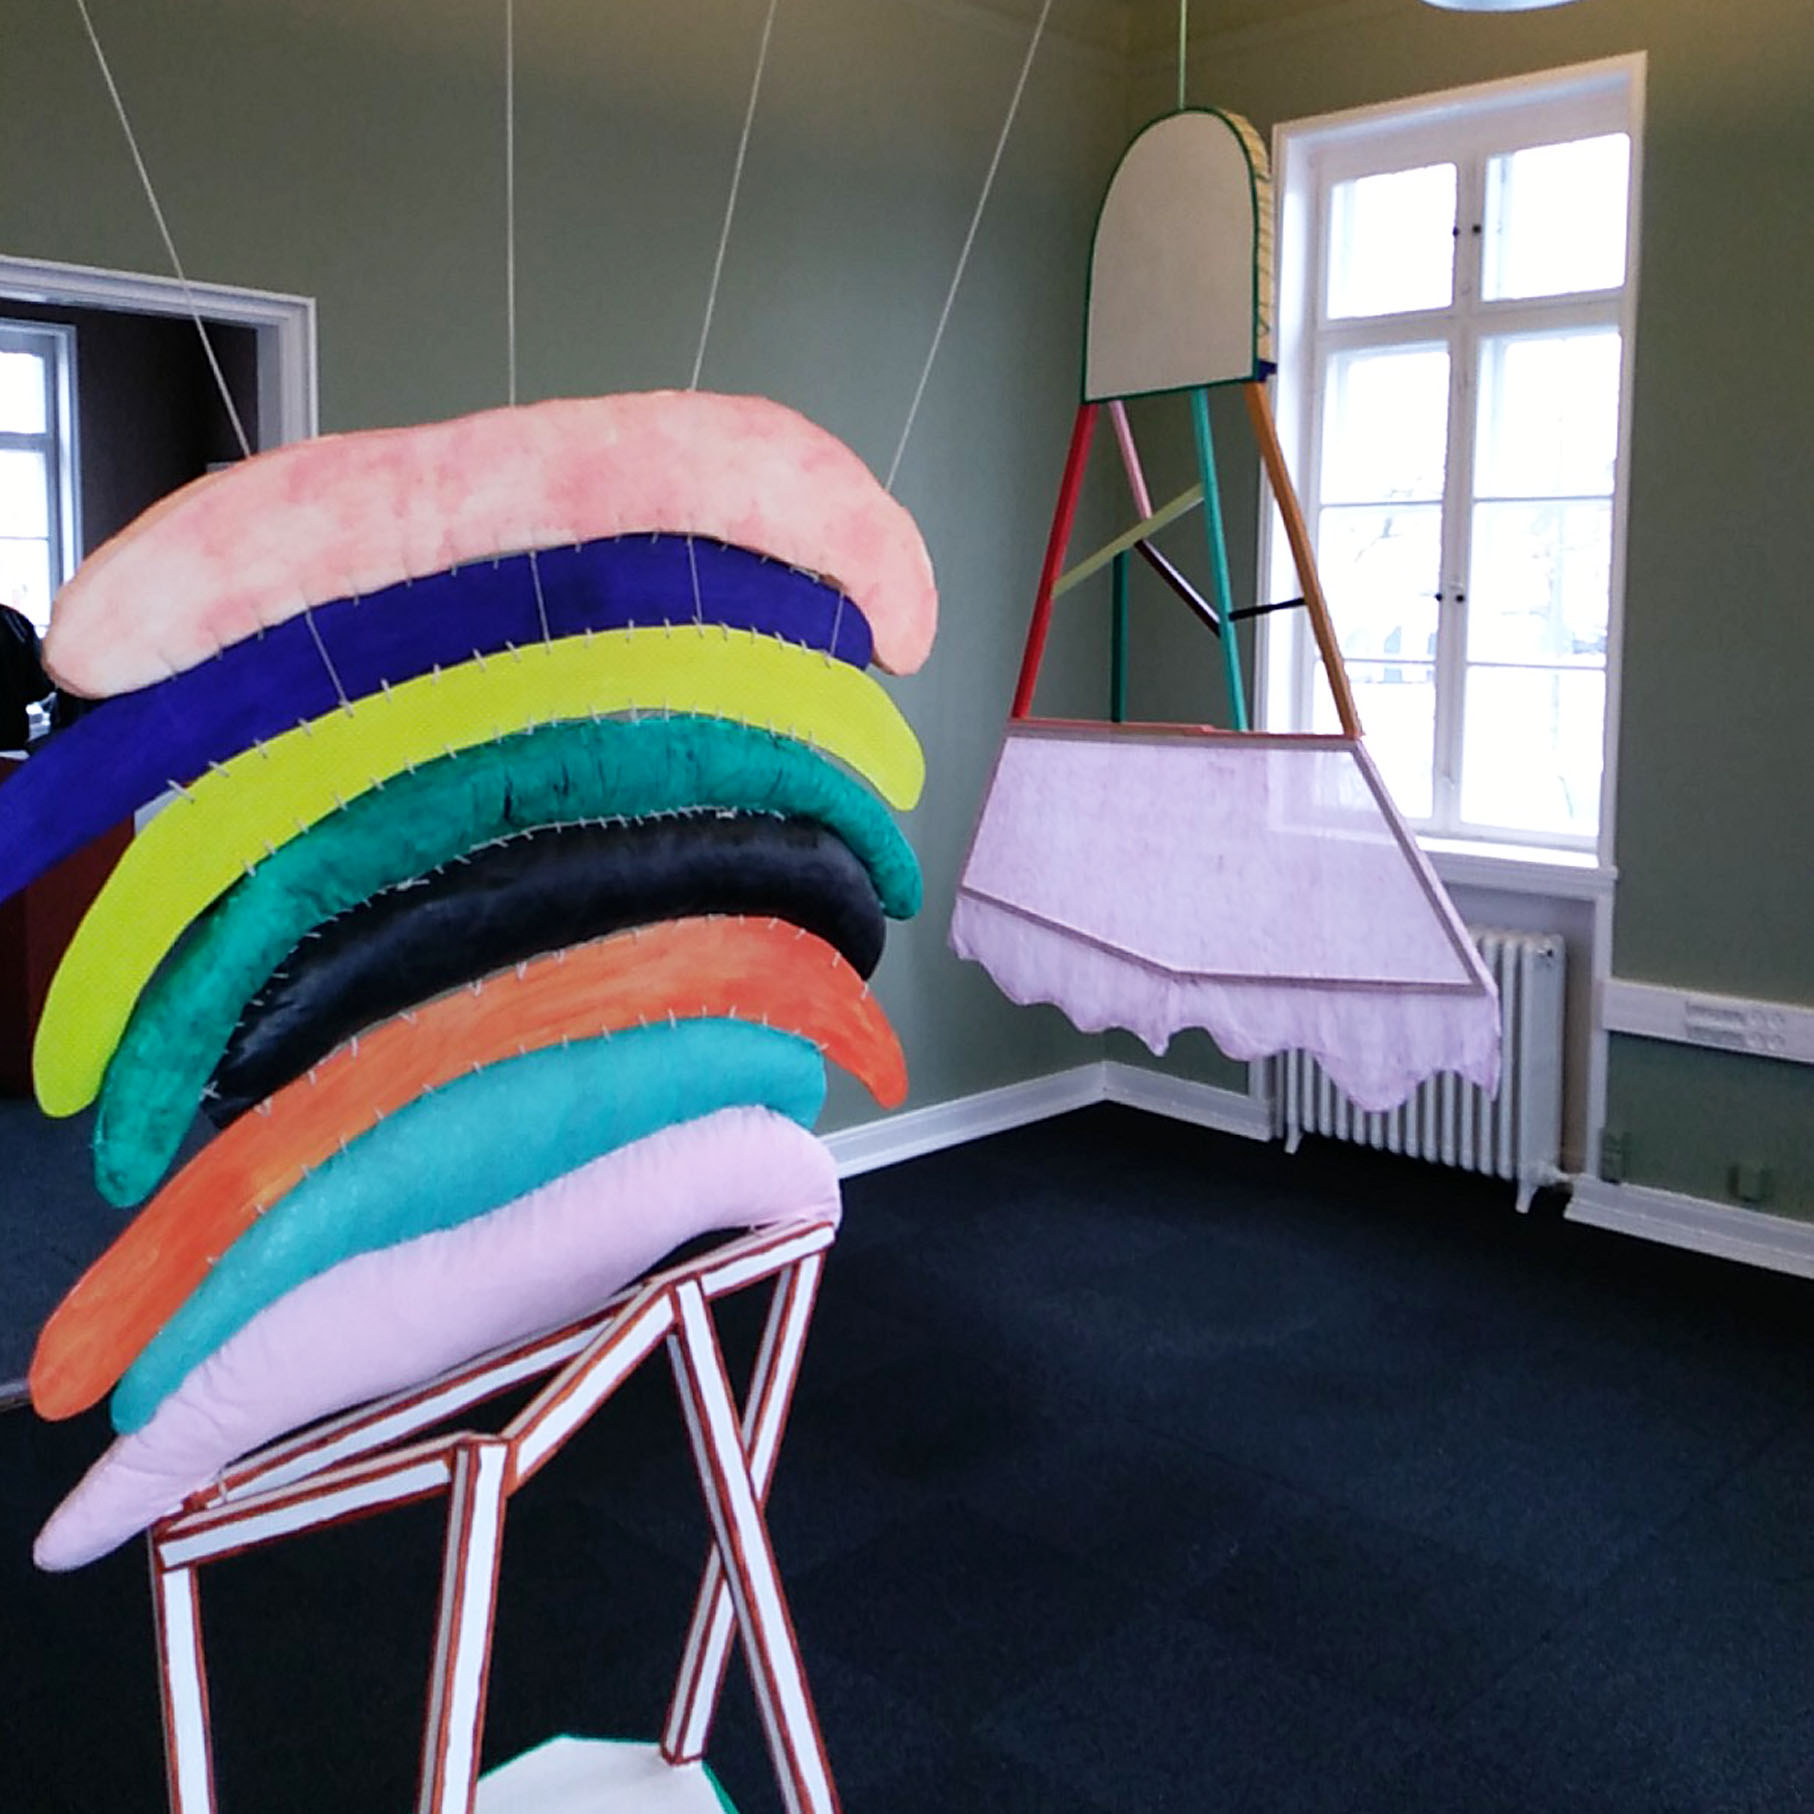 """Marie J.Engelsvold. """"I don't mind the gap""""   """"Holding on to happiness"""" Wood, stuffed textile objects, acrylic paint, foam, yarn. 190 x 97 x 67 cm. 2013"""